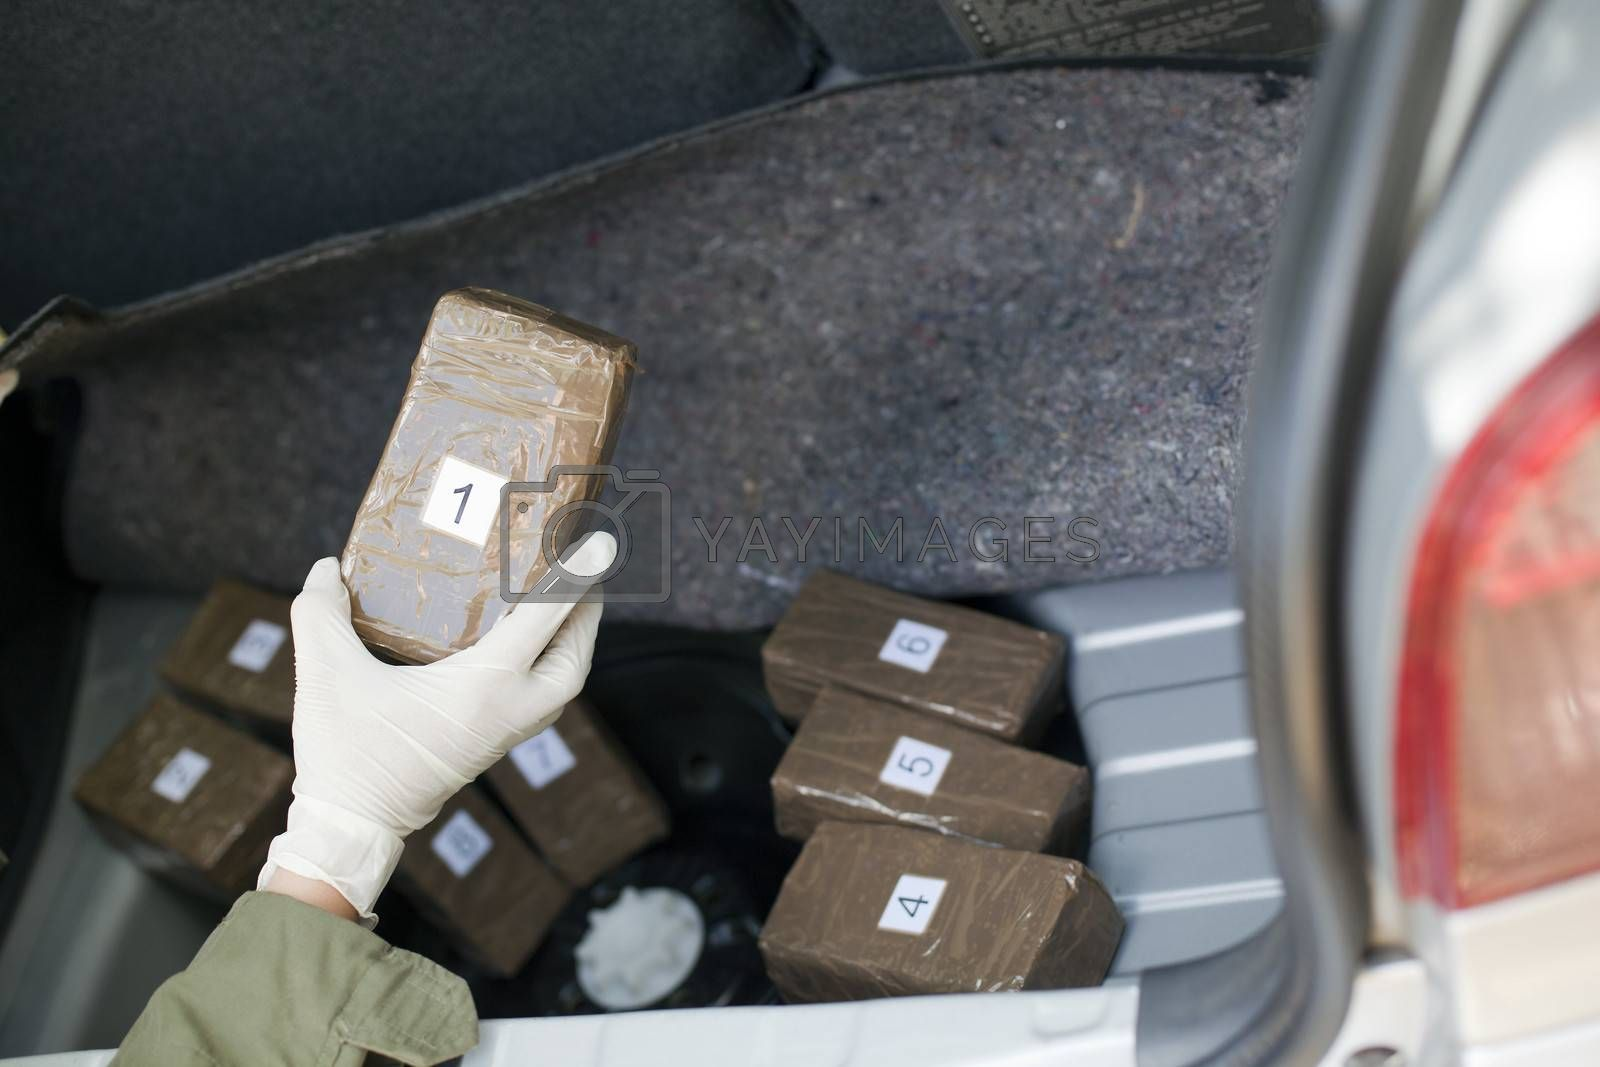 Cocaine packages in the trunk of a car